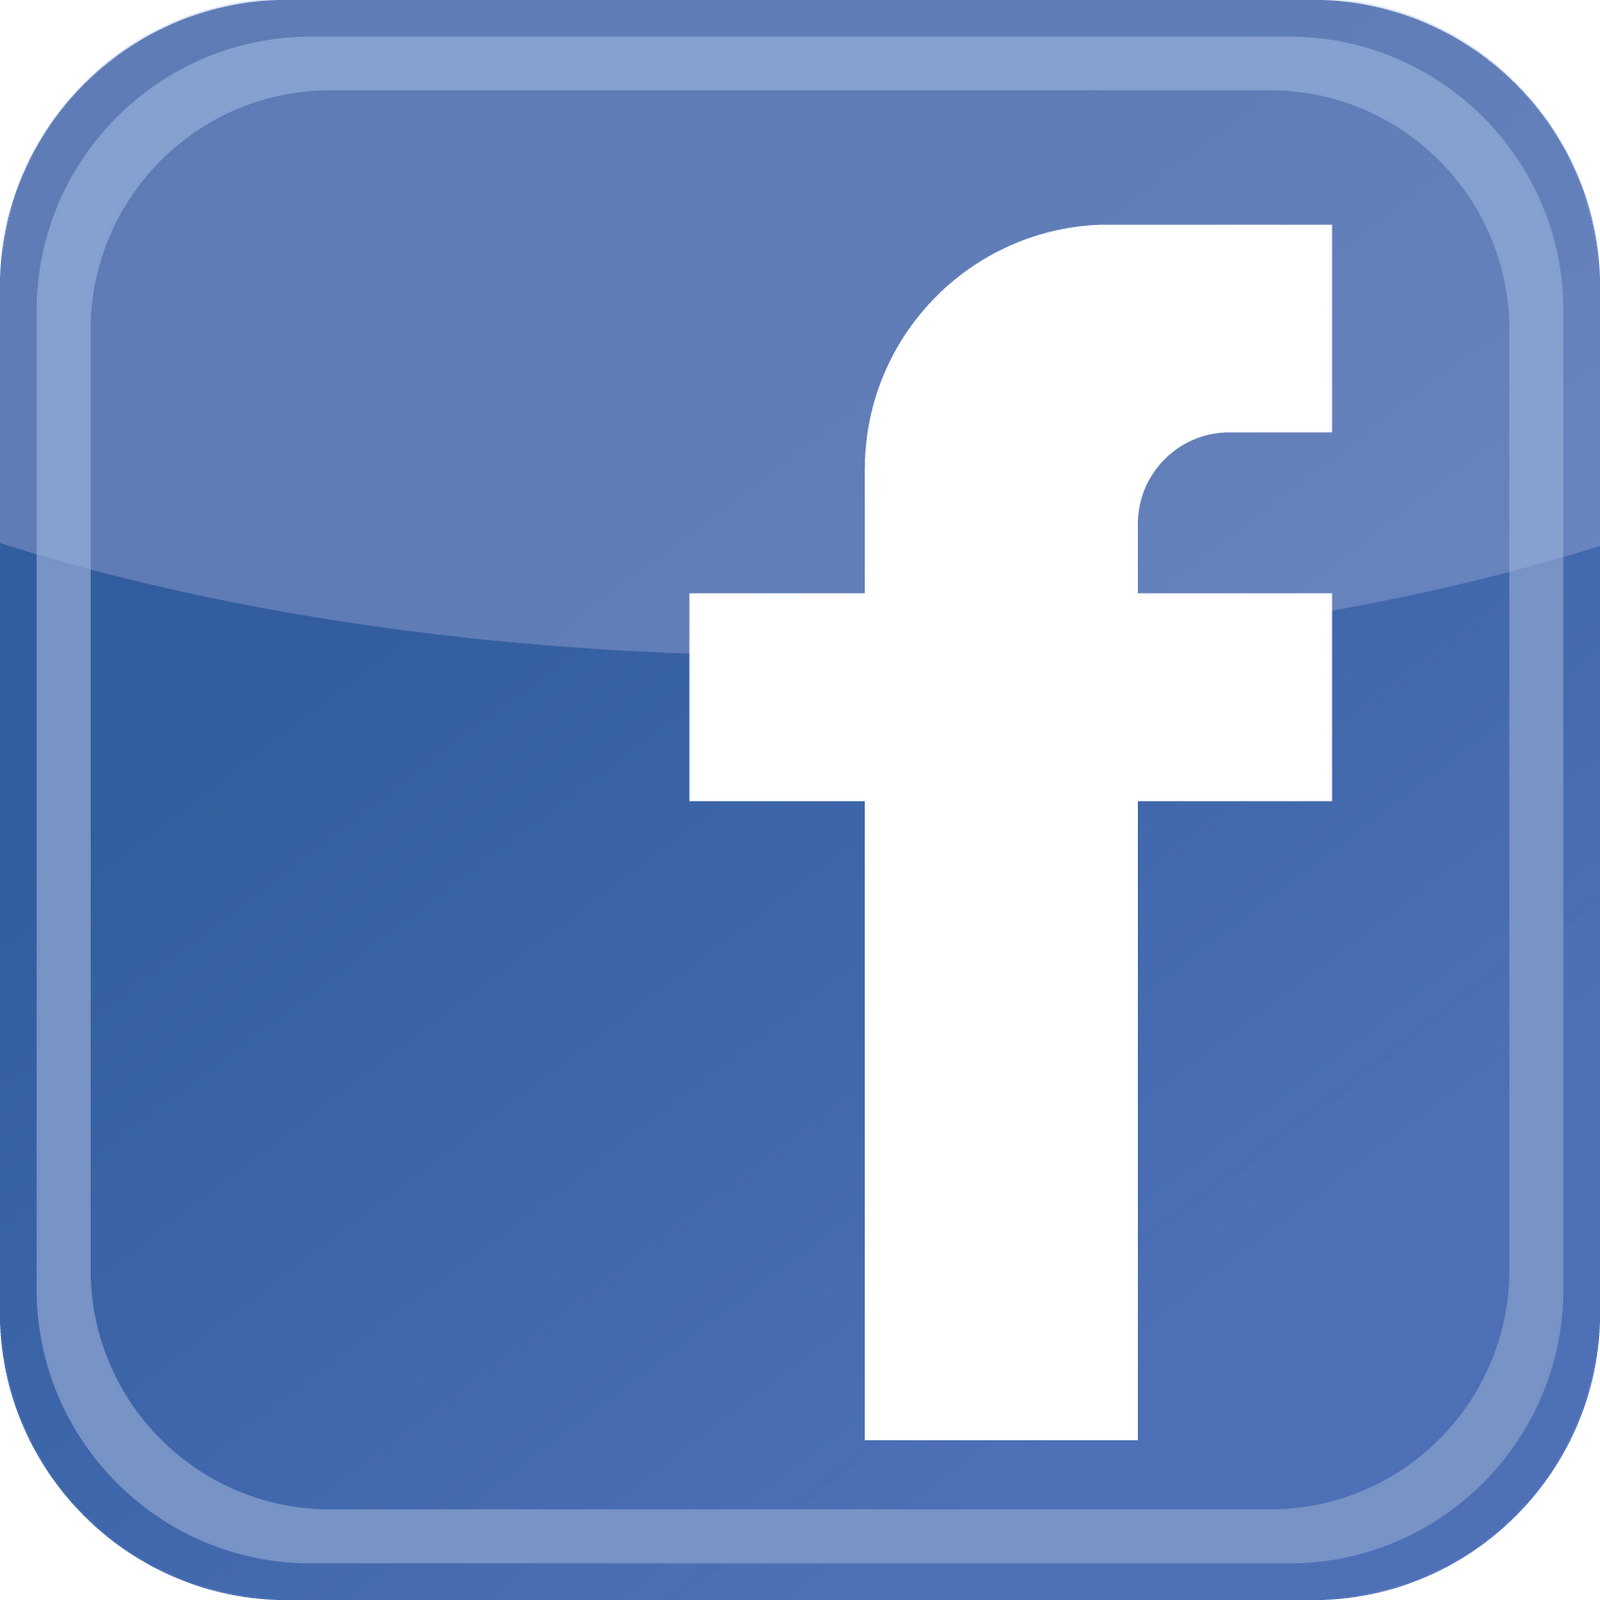 Facebook clipart blank. Experts whitepaper labels advertising